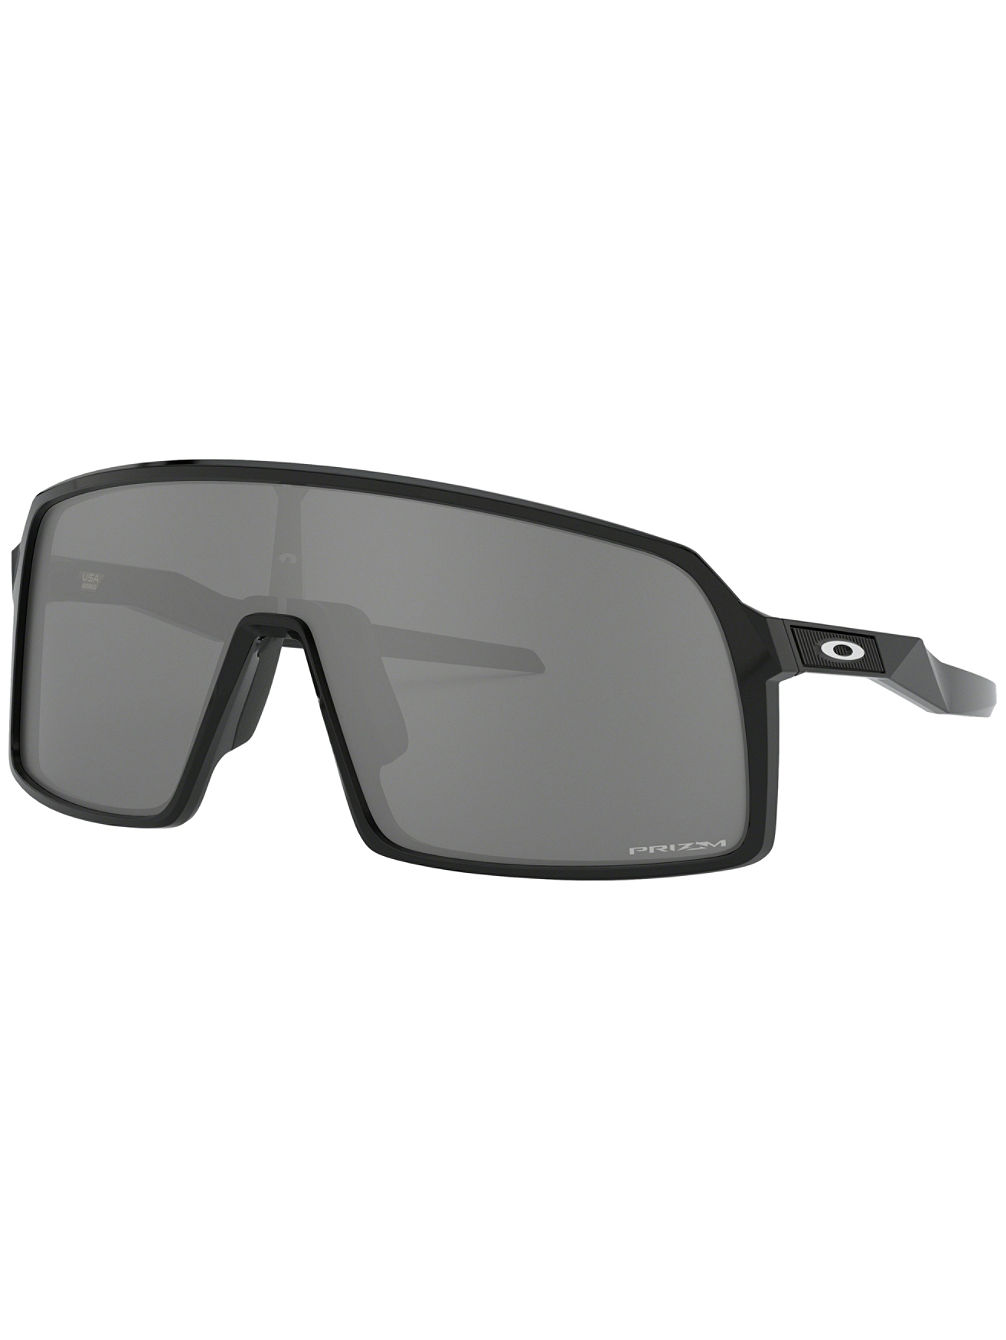 Sutro polished black Sonnenbrille